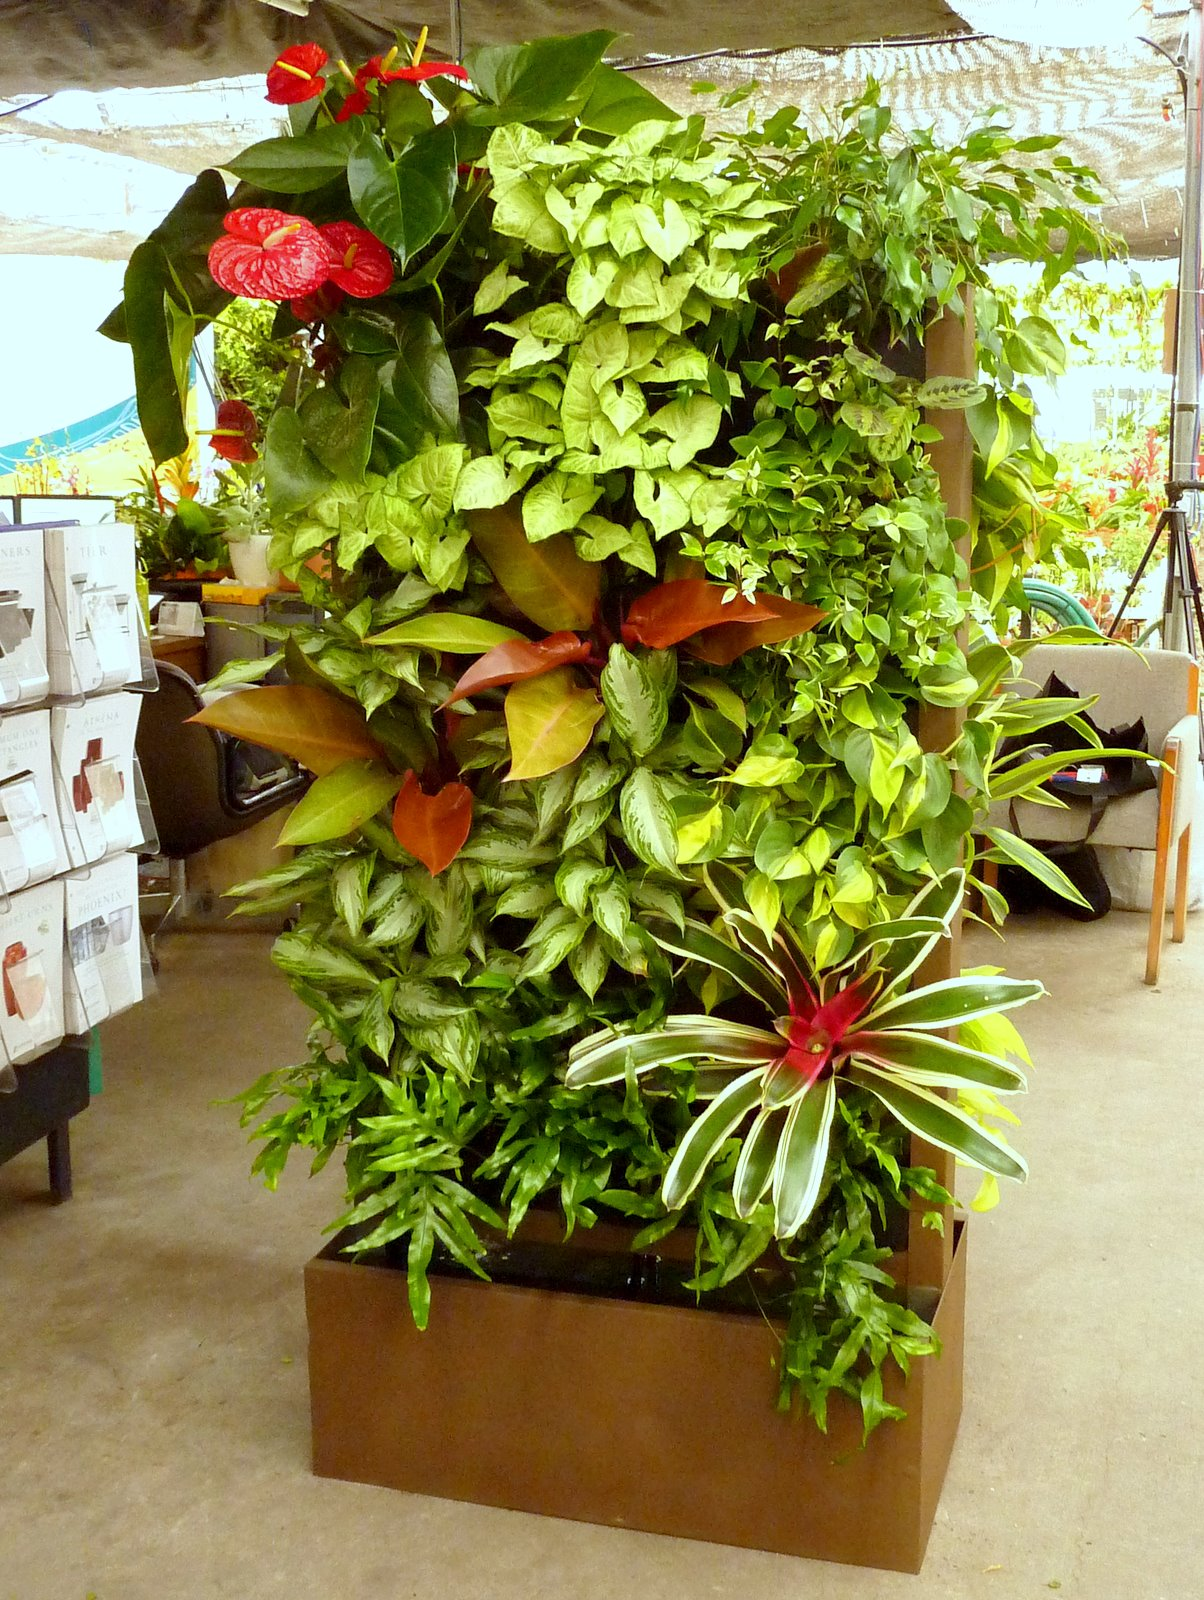 10 Best Plants To Grow For Vertical Garden The Self